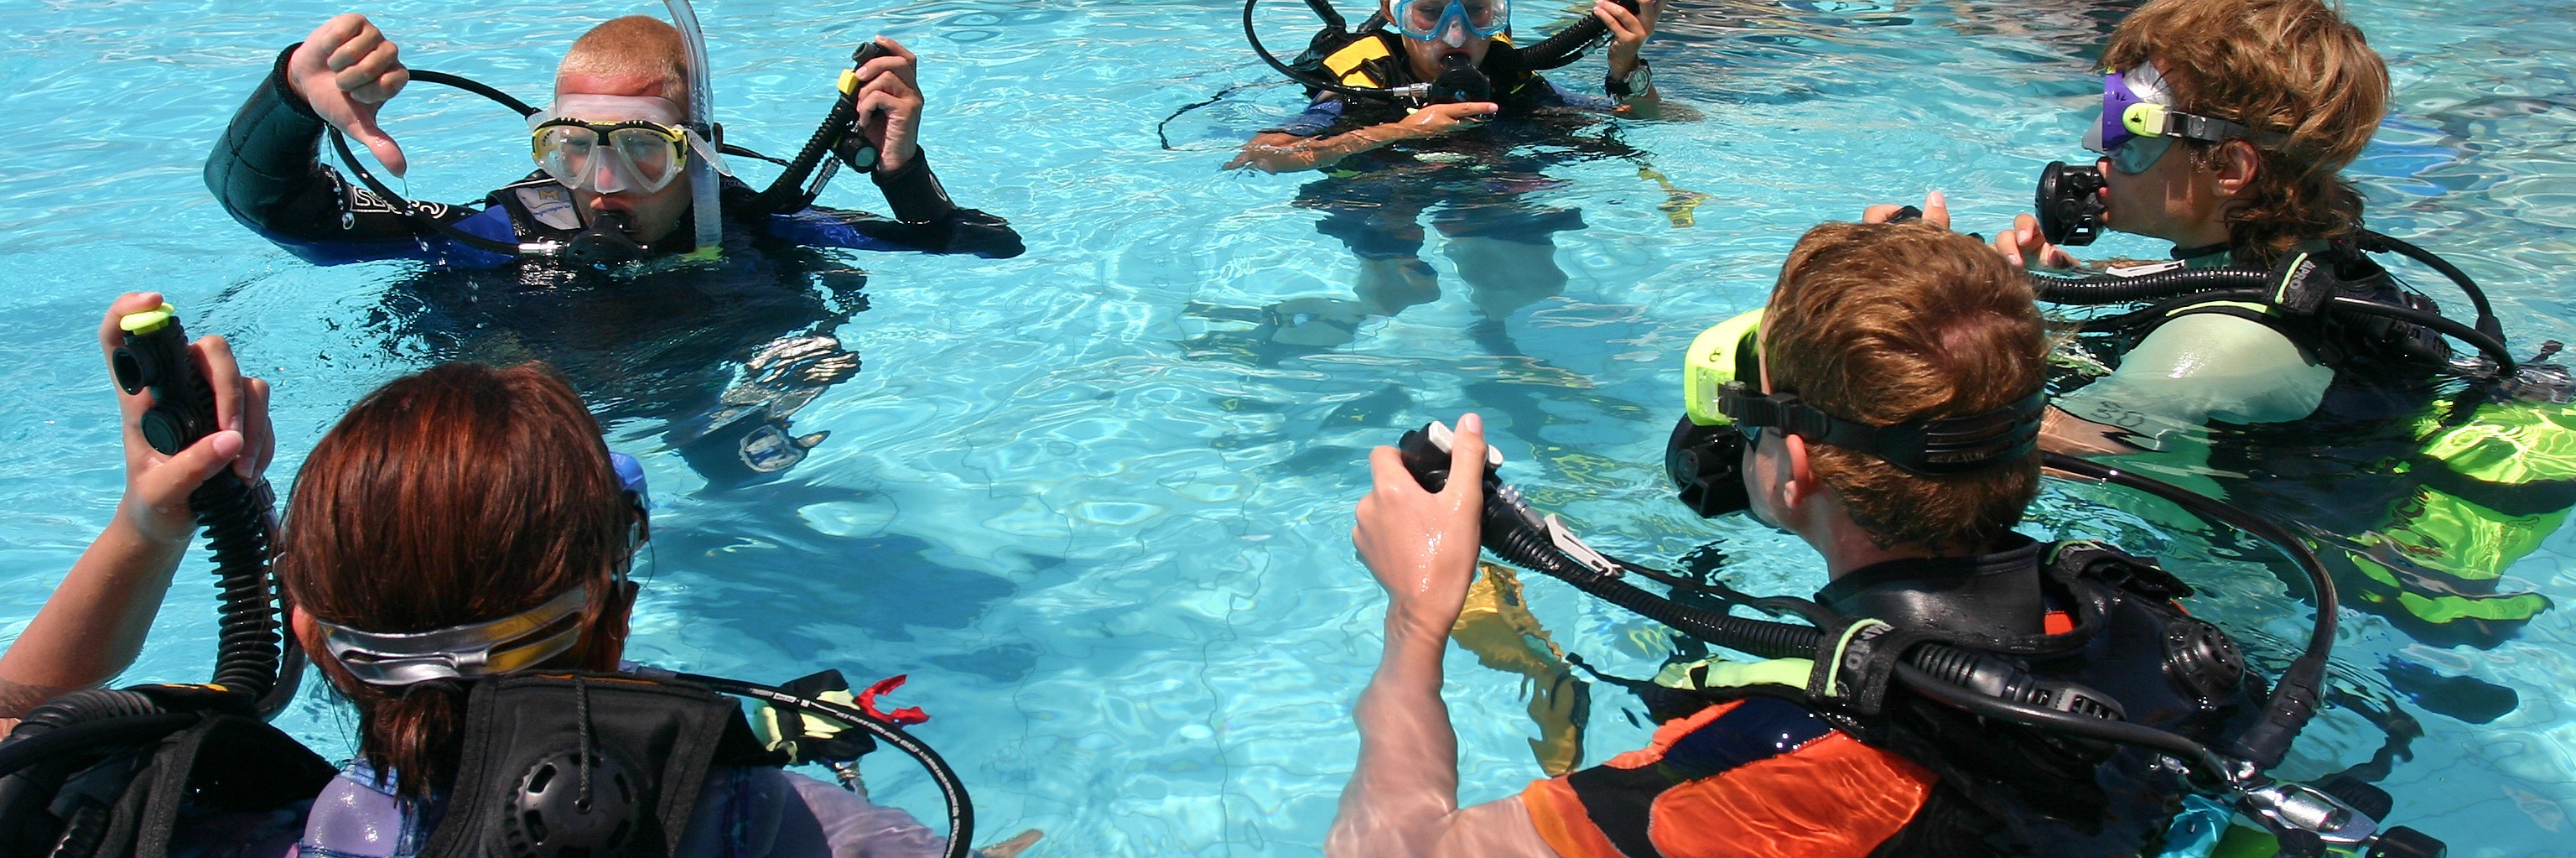 A scuba diving instructor leading a class in pool exercises.